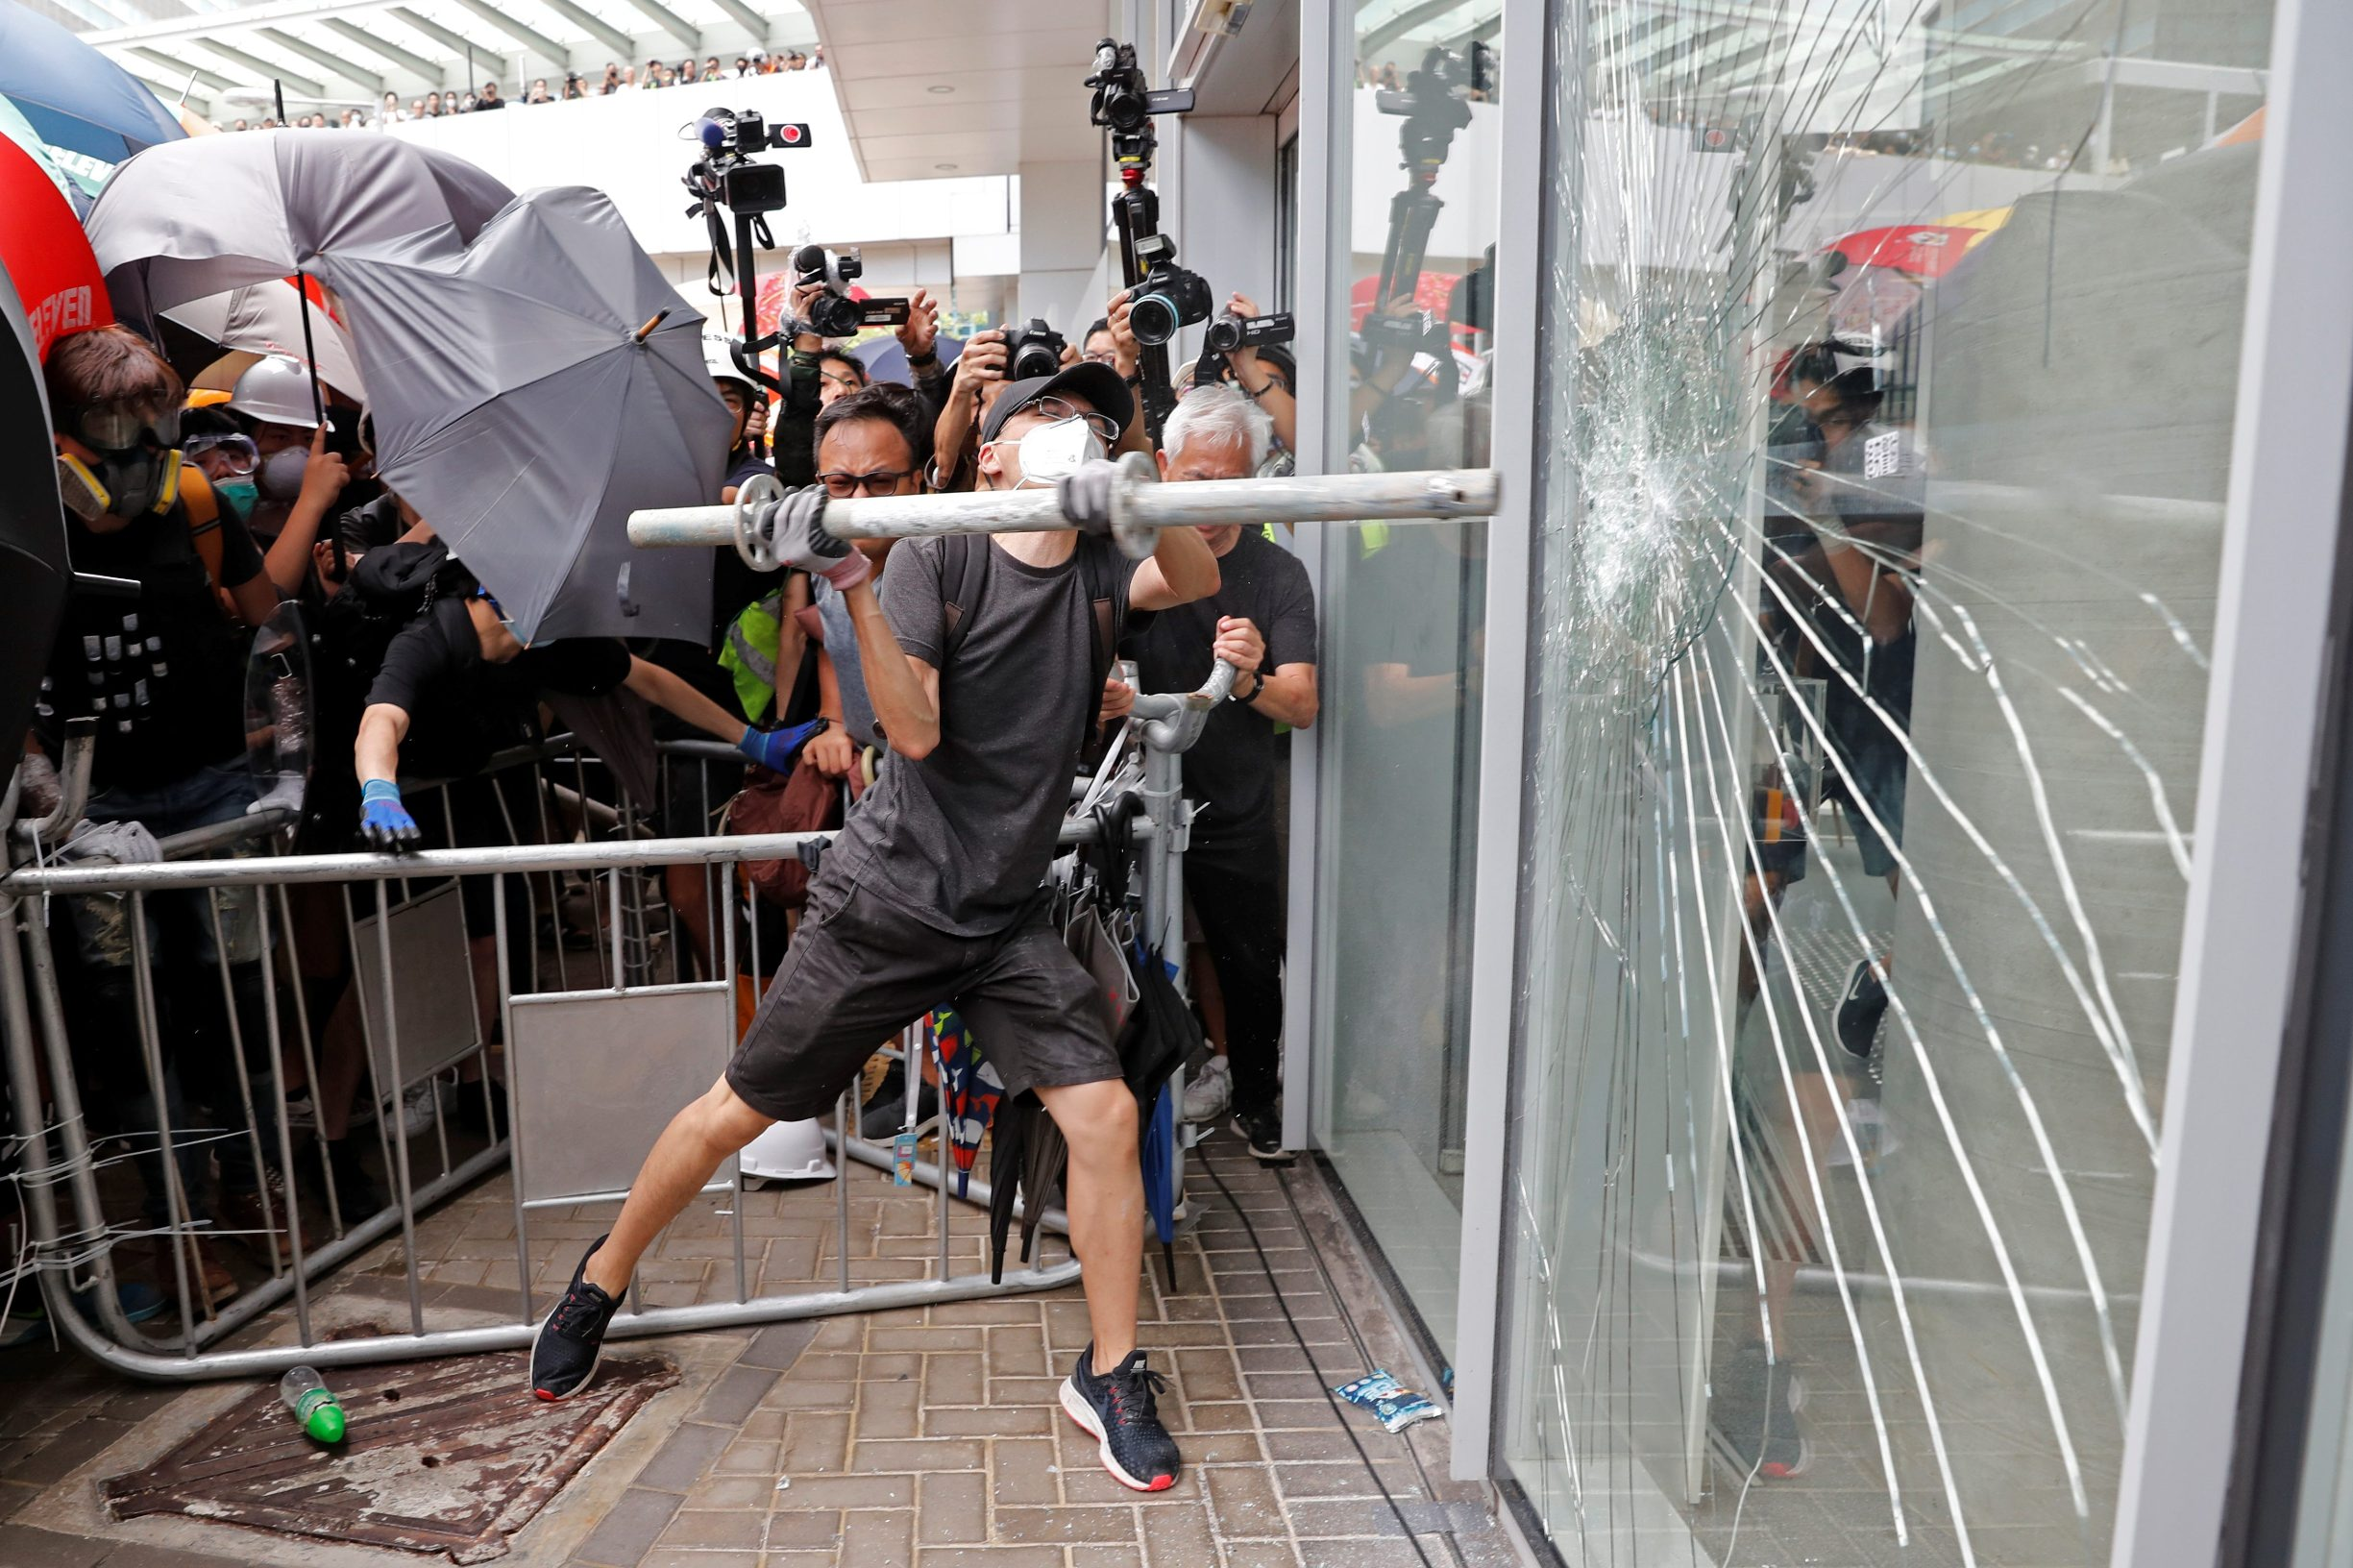 2019-07-01T055542Z_1256928367_RC1D39A18E00_RTRMADP_3_HONGKONG-EXTRADITION